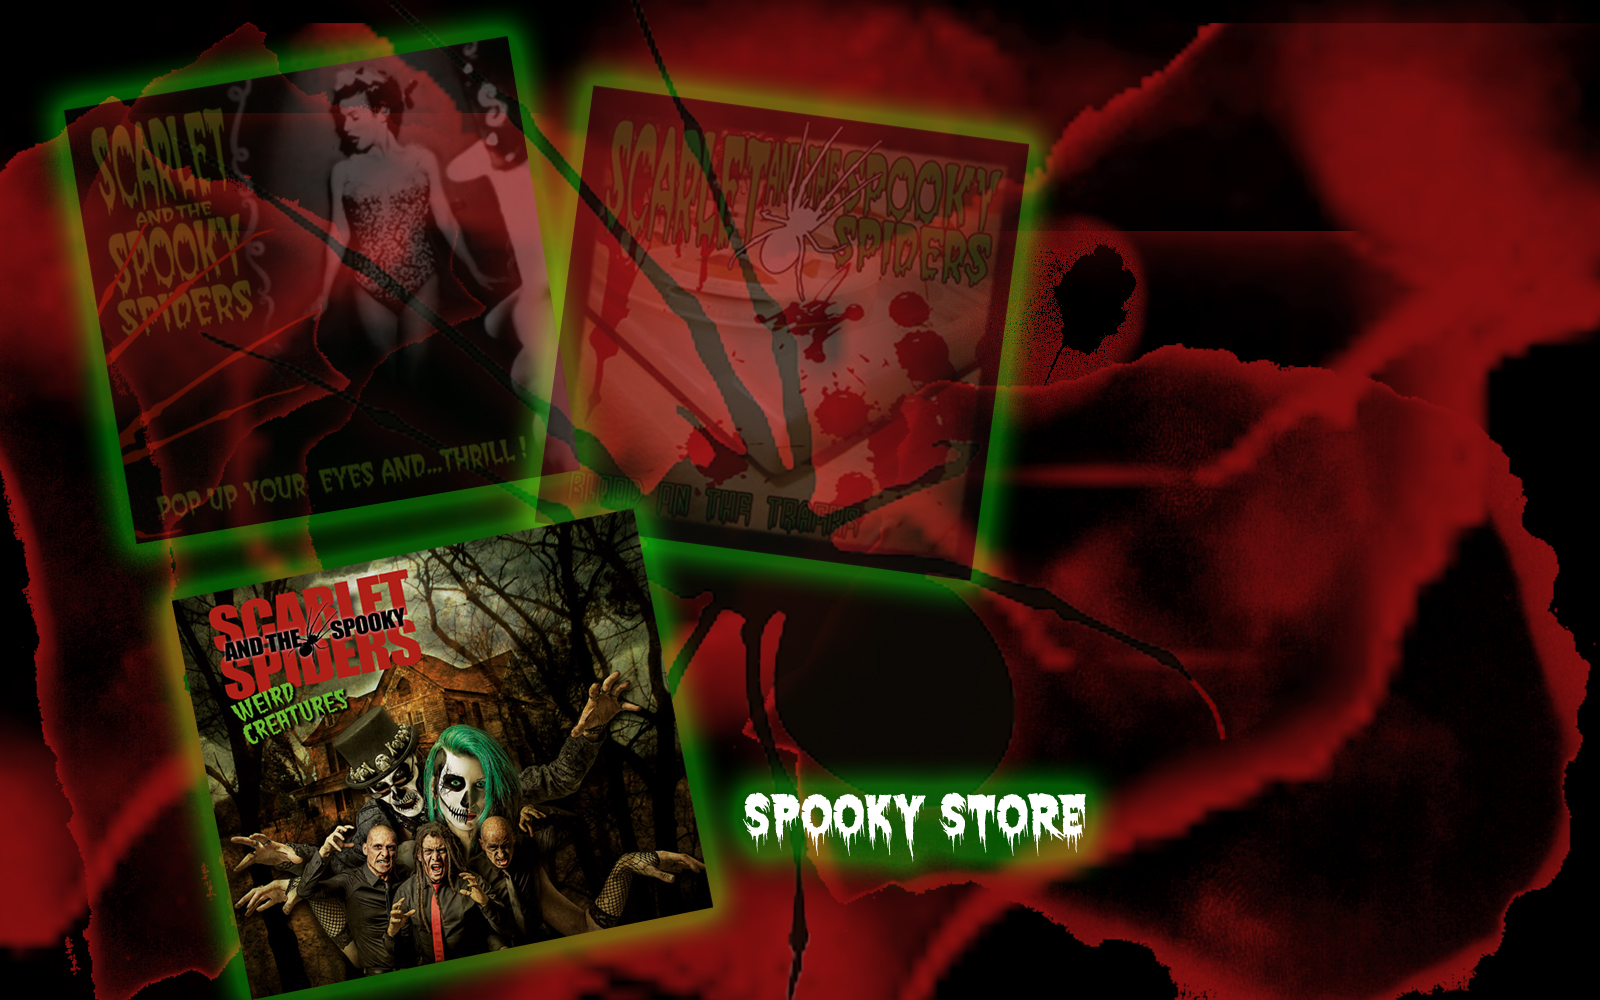 weird creatures, copy, album, spooky store, scarlet and the spooky spiders